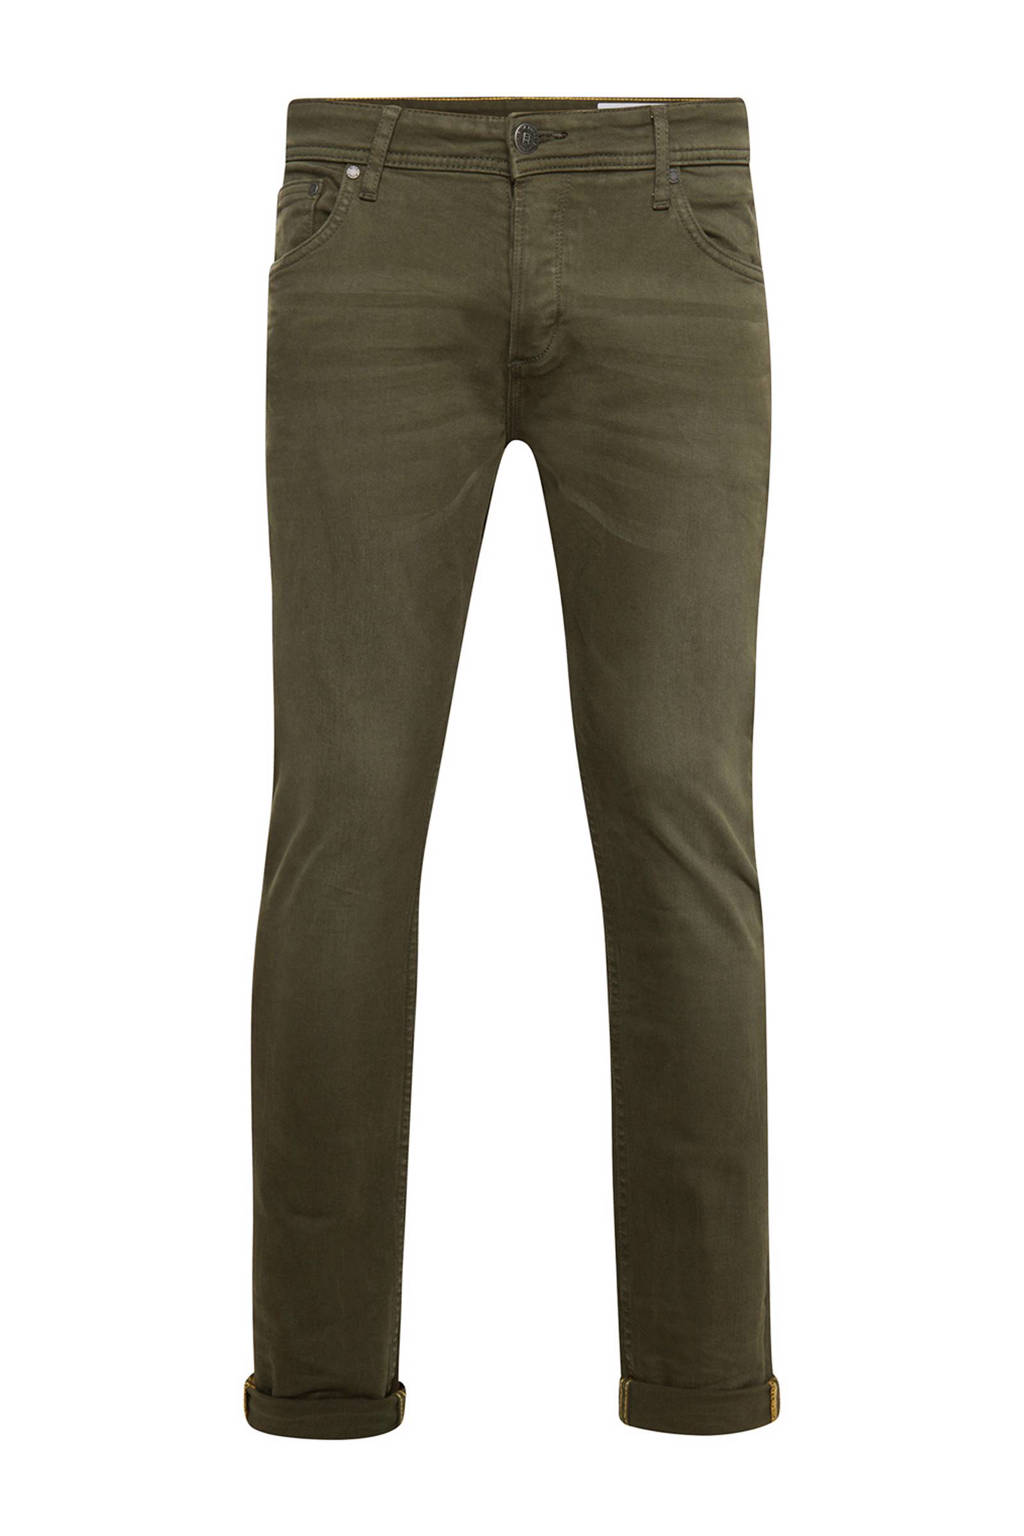 WE Fashion Blue Ridge slim fit broek, Donkergroen